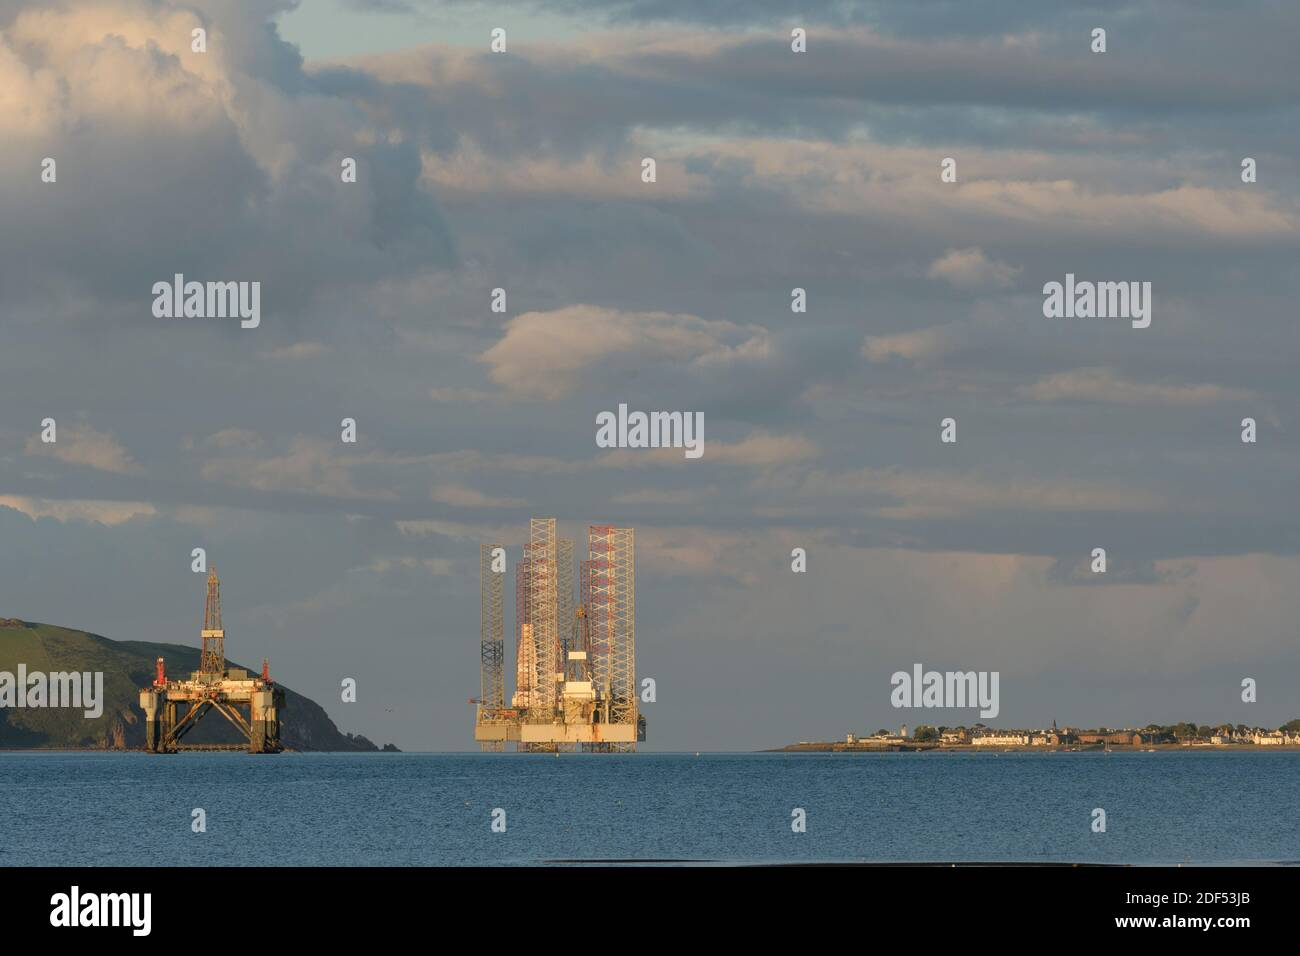 Oil drilling platforms moored in Cromarty Firth, Scotland Stock Photo